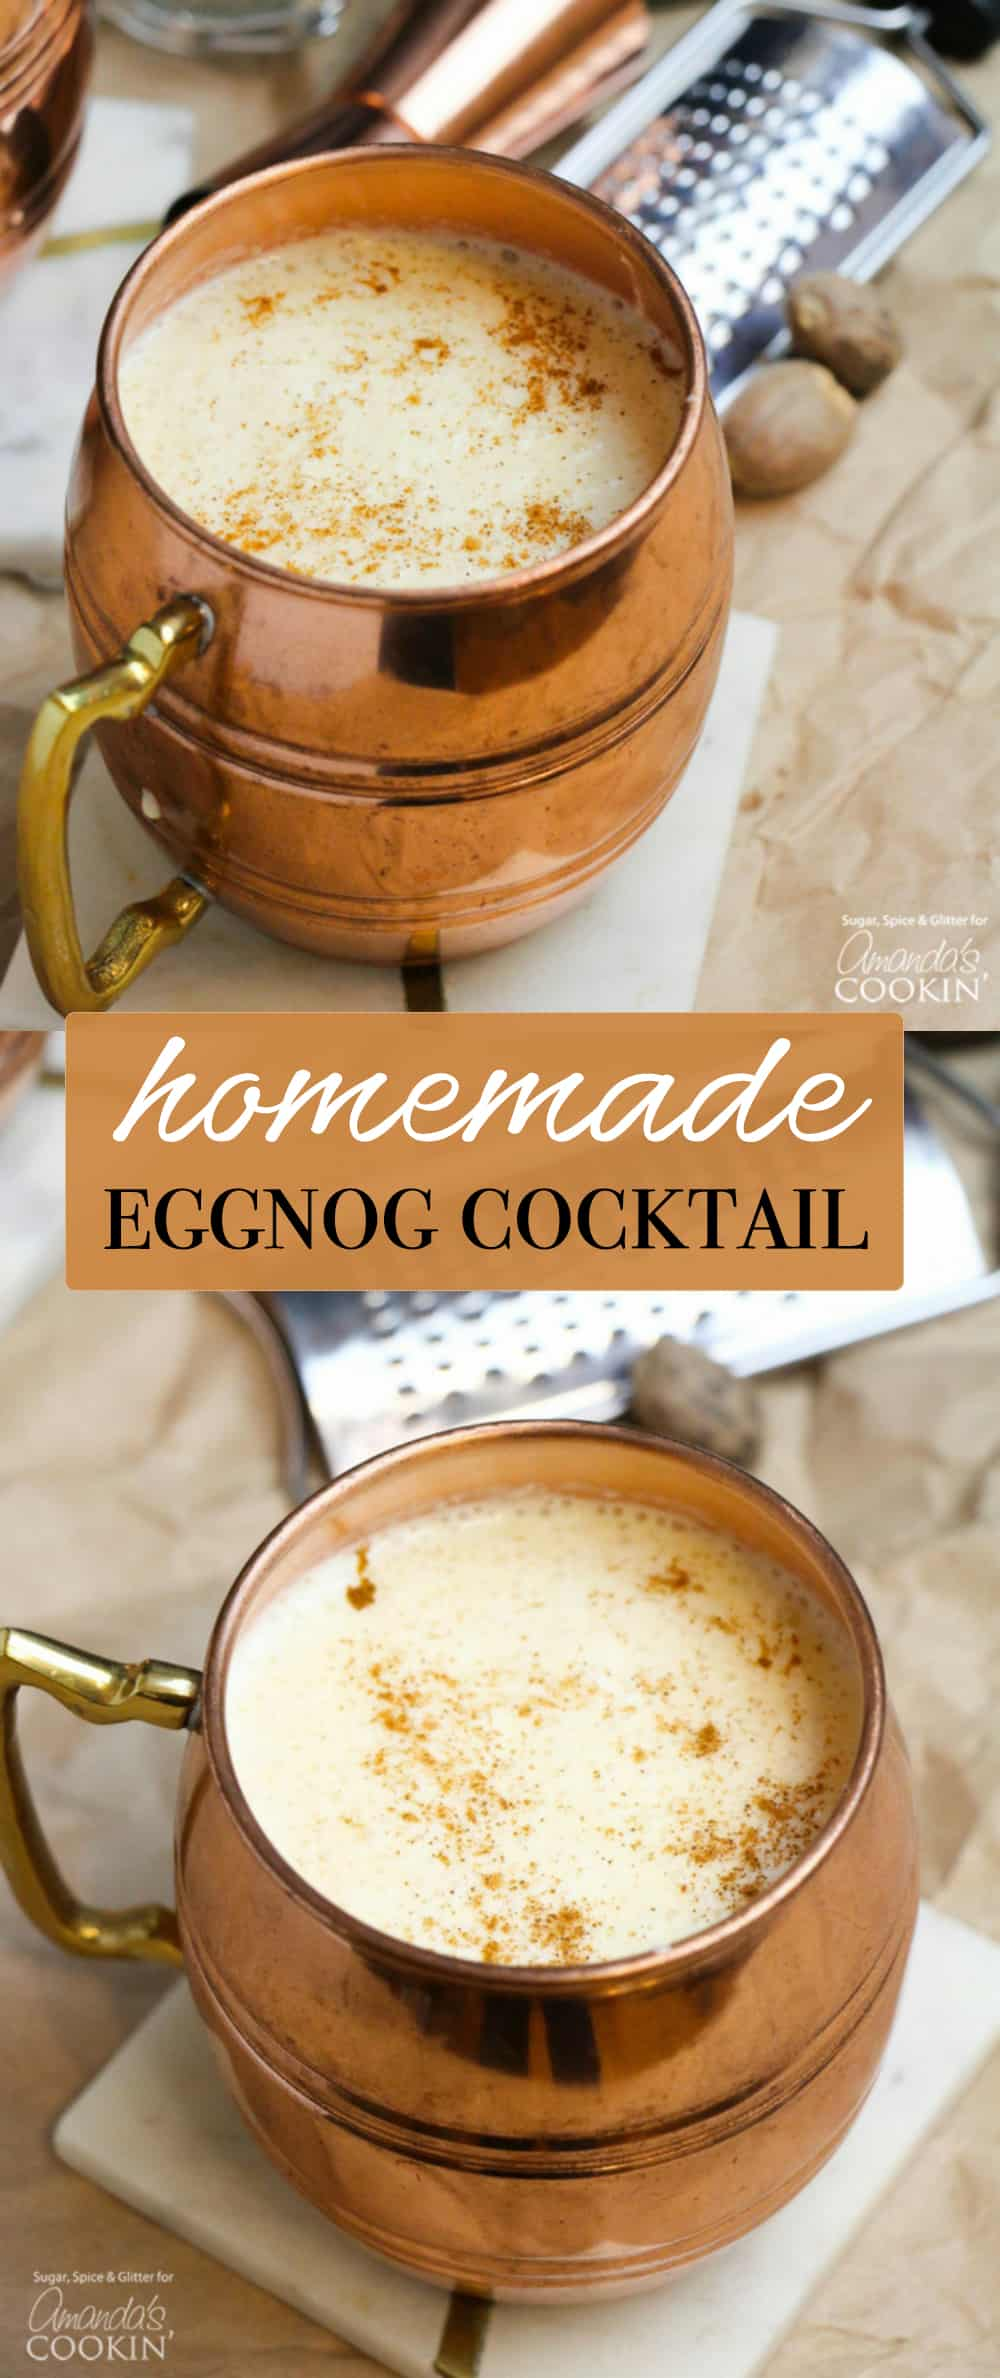 This Homemade Eggnog Cocktail is thick, rich and flavorful - everything a good eggnog should be. A classic holiday cocktail you'll want to make a tradition!